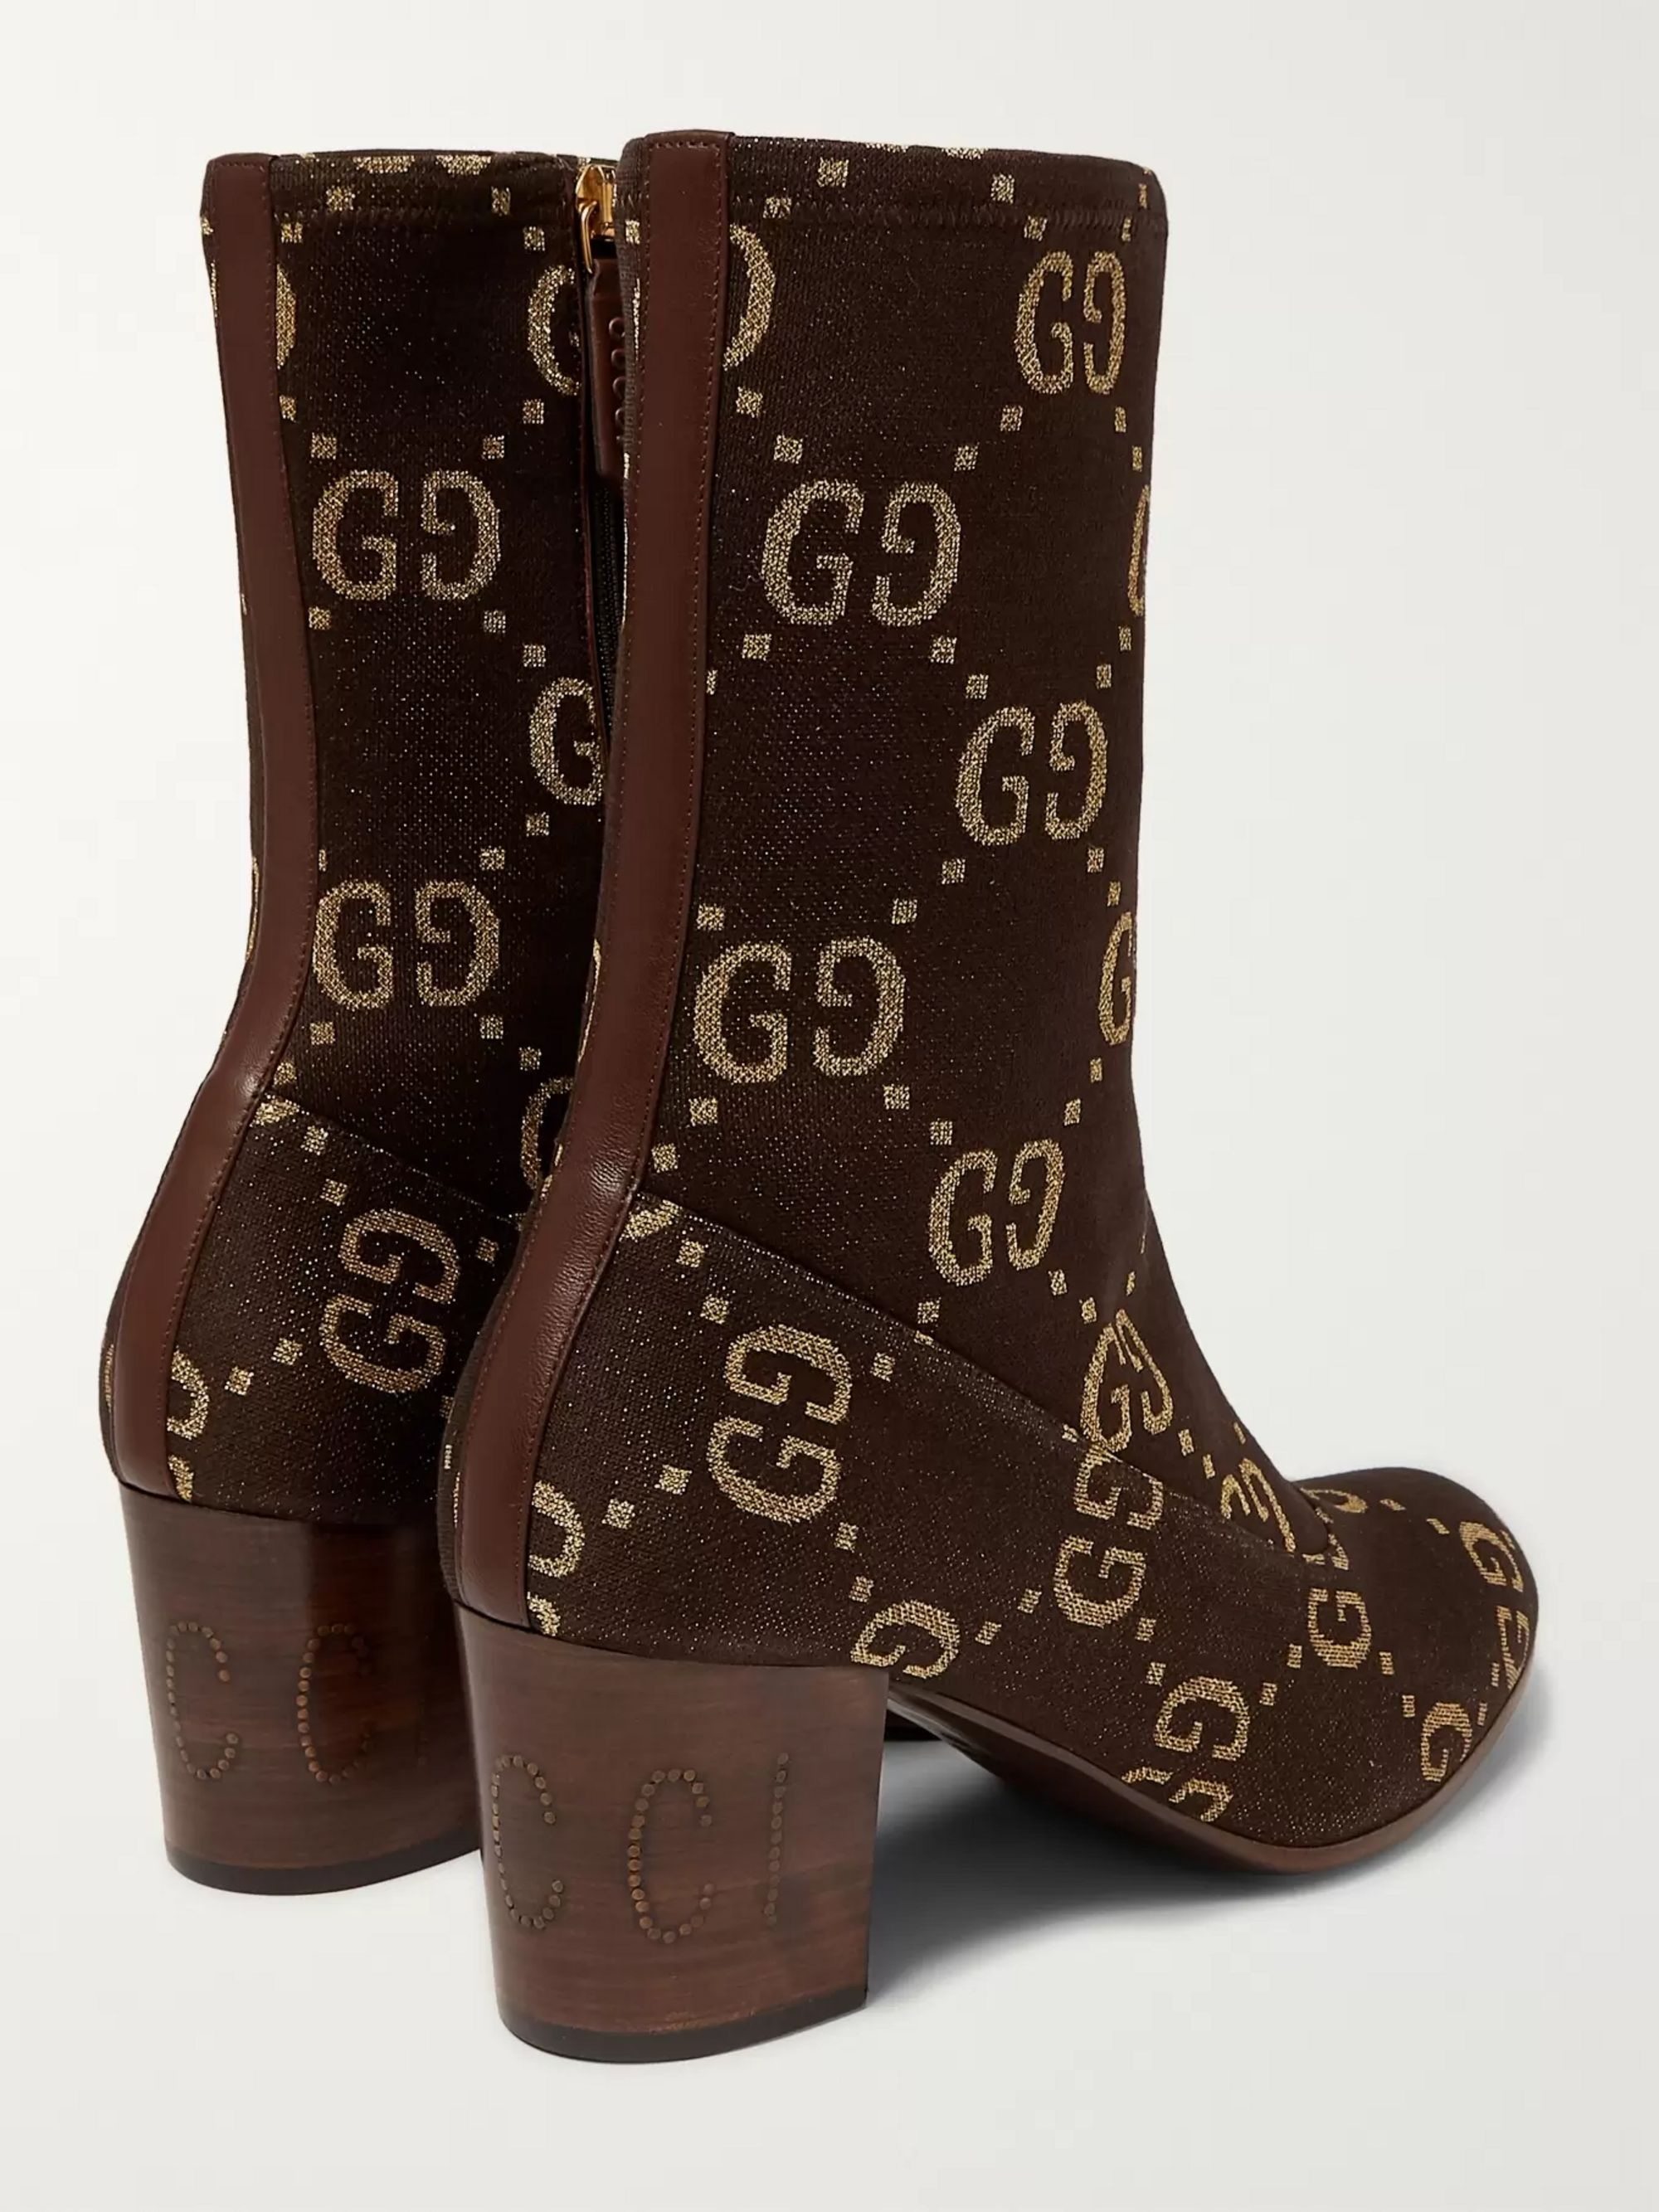 Gucci Leather-Trimmed Logo-Jacquard Boots